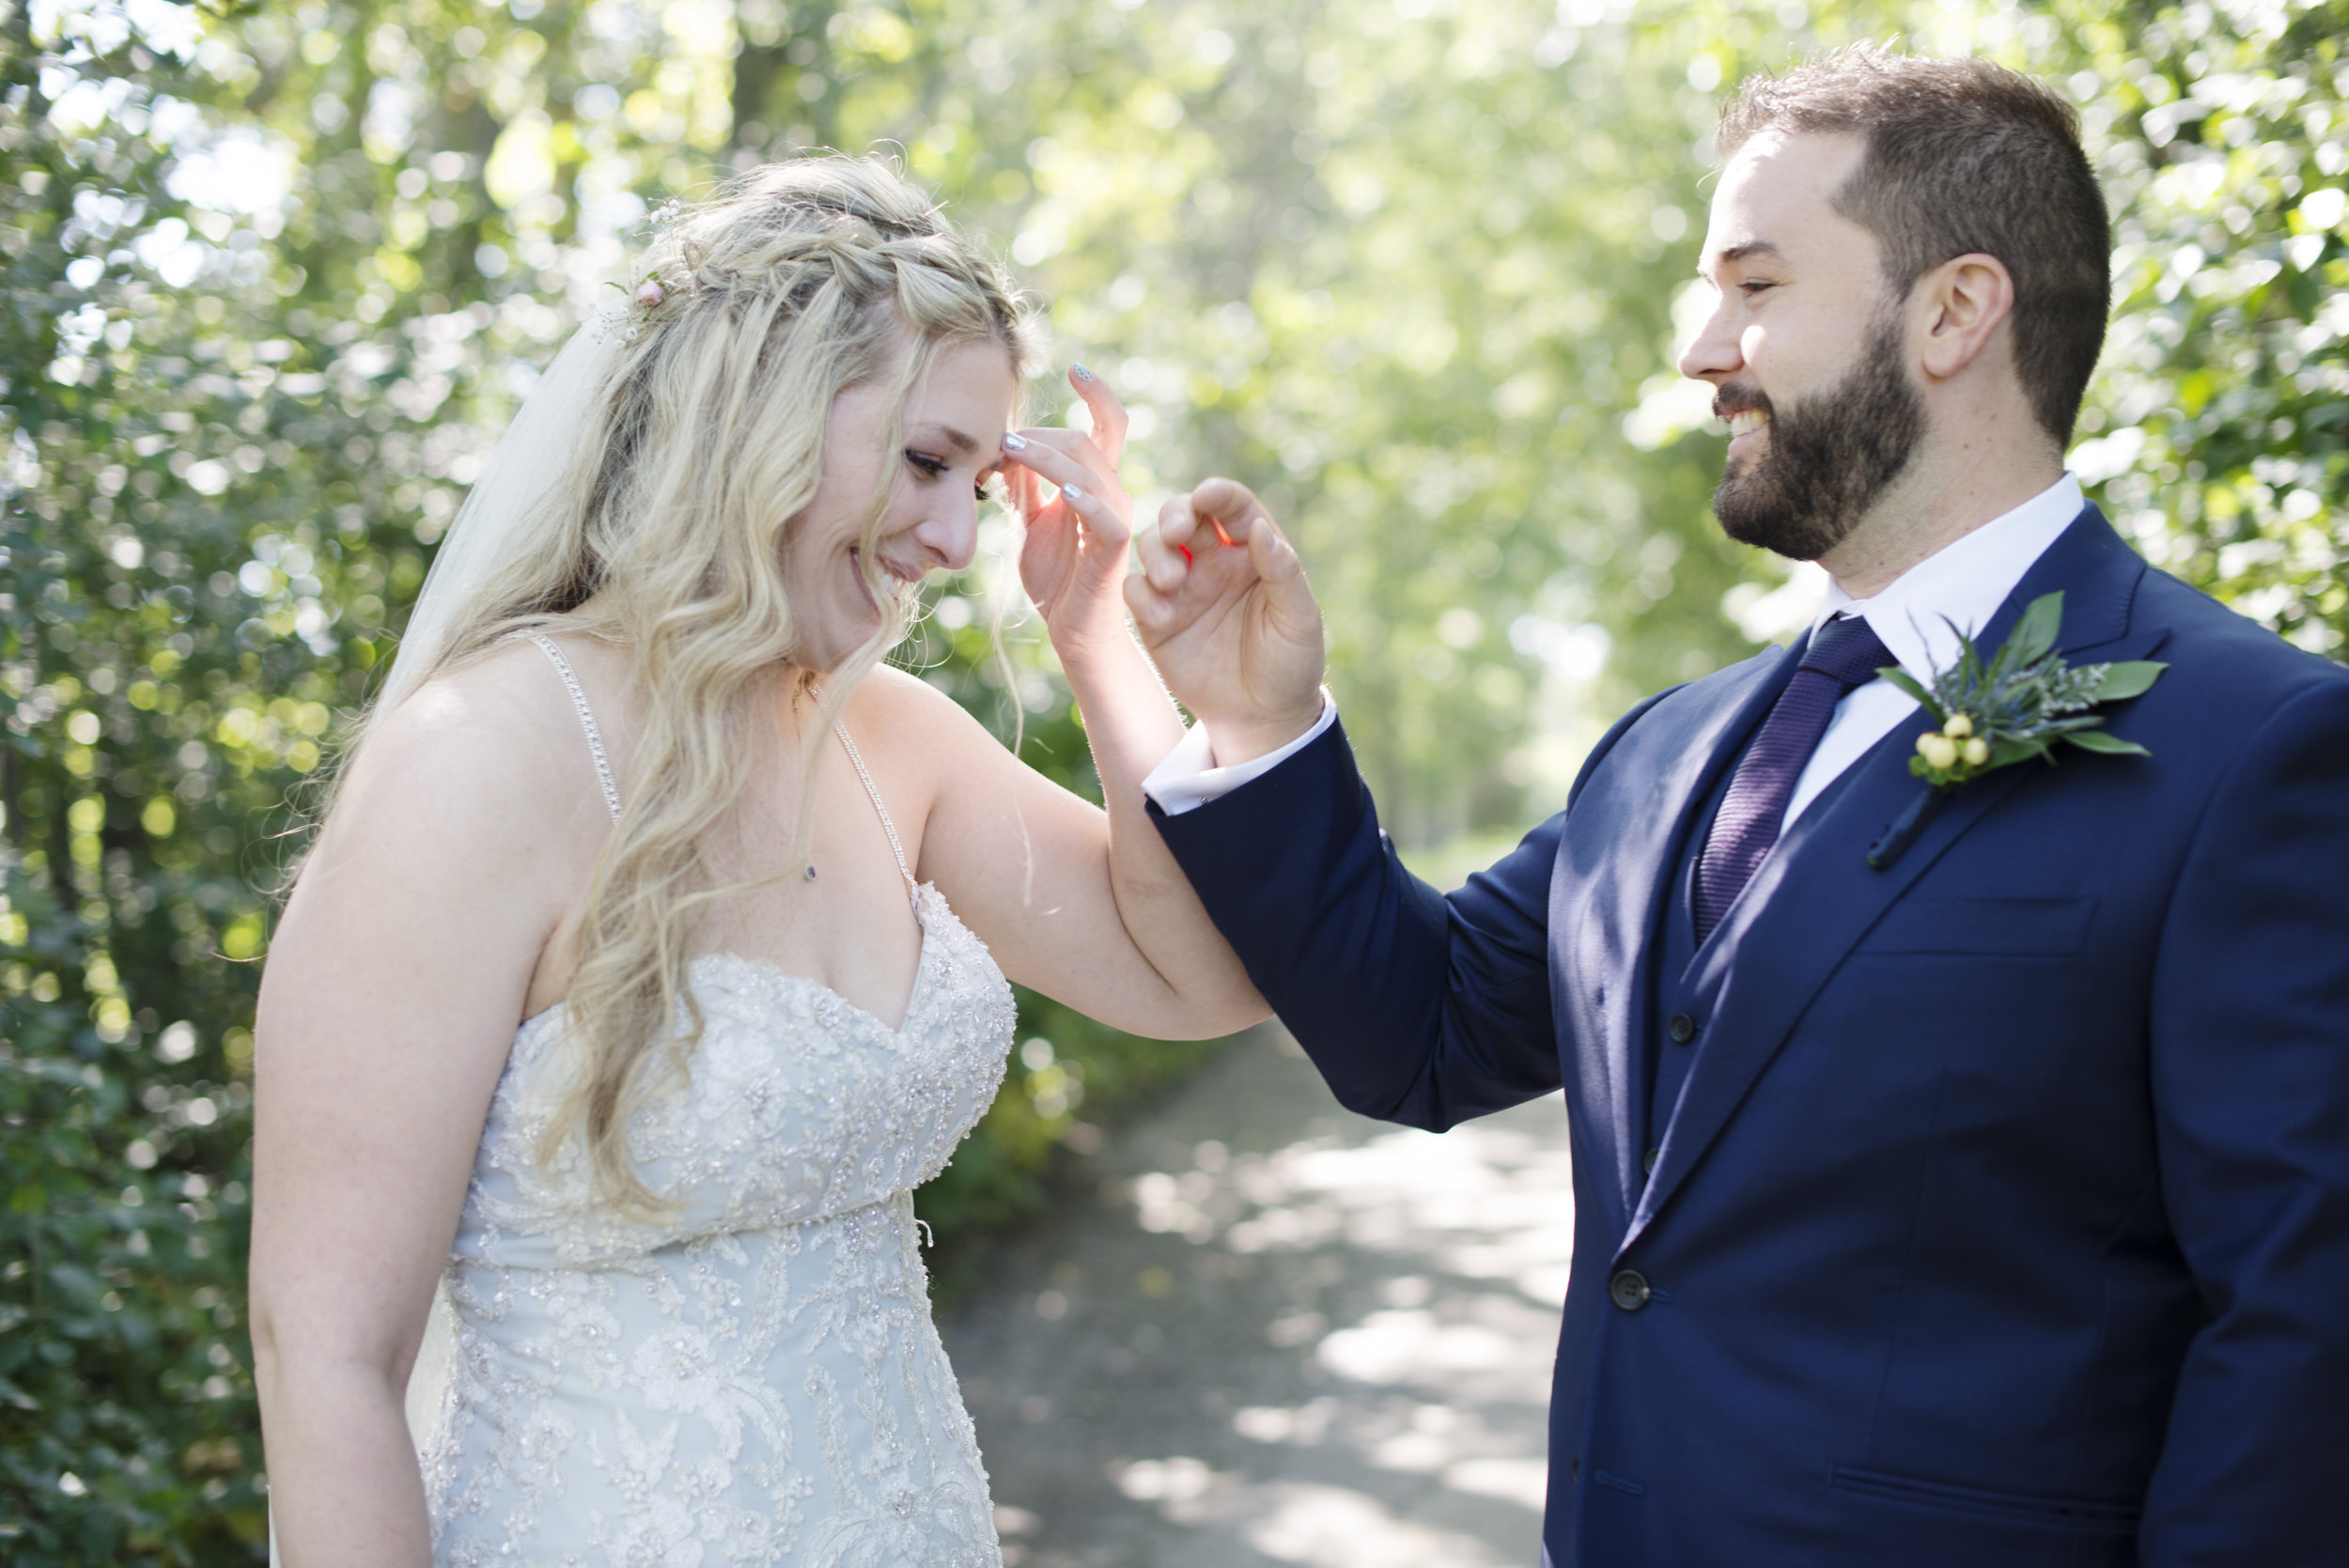 RosewoodWeddingPhotos-TorontoWeddingPhotographer-DocumentaryWeddingPhotographer-KingCity-KingValleyGolfClub-CouplePortraits